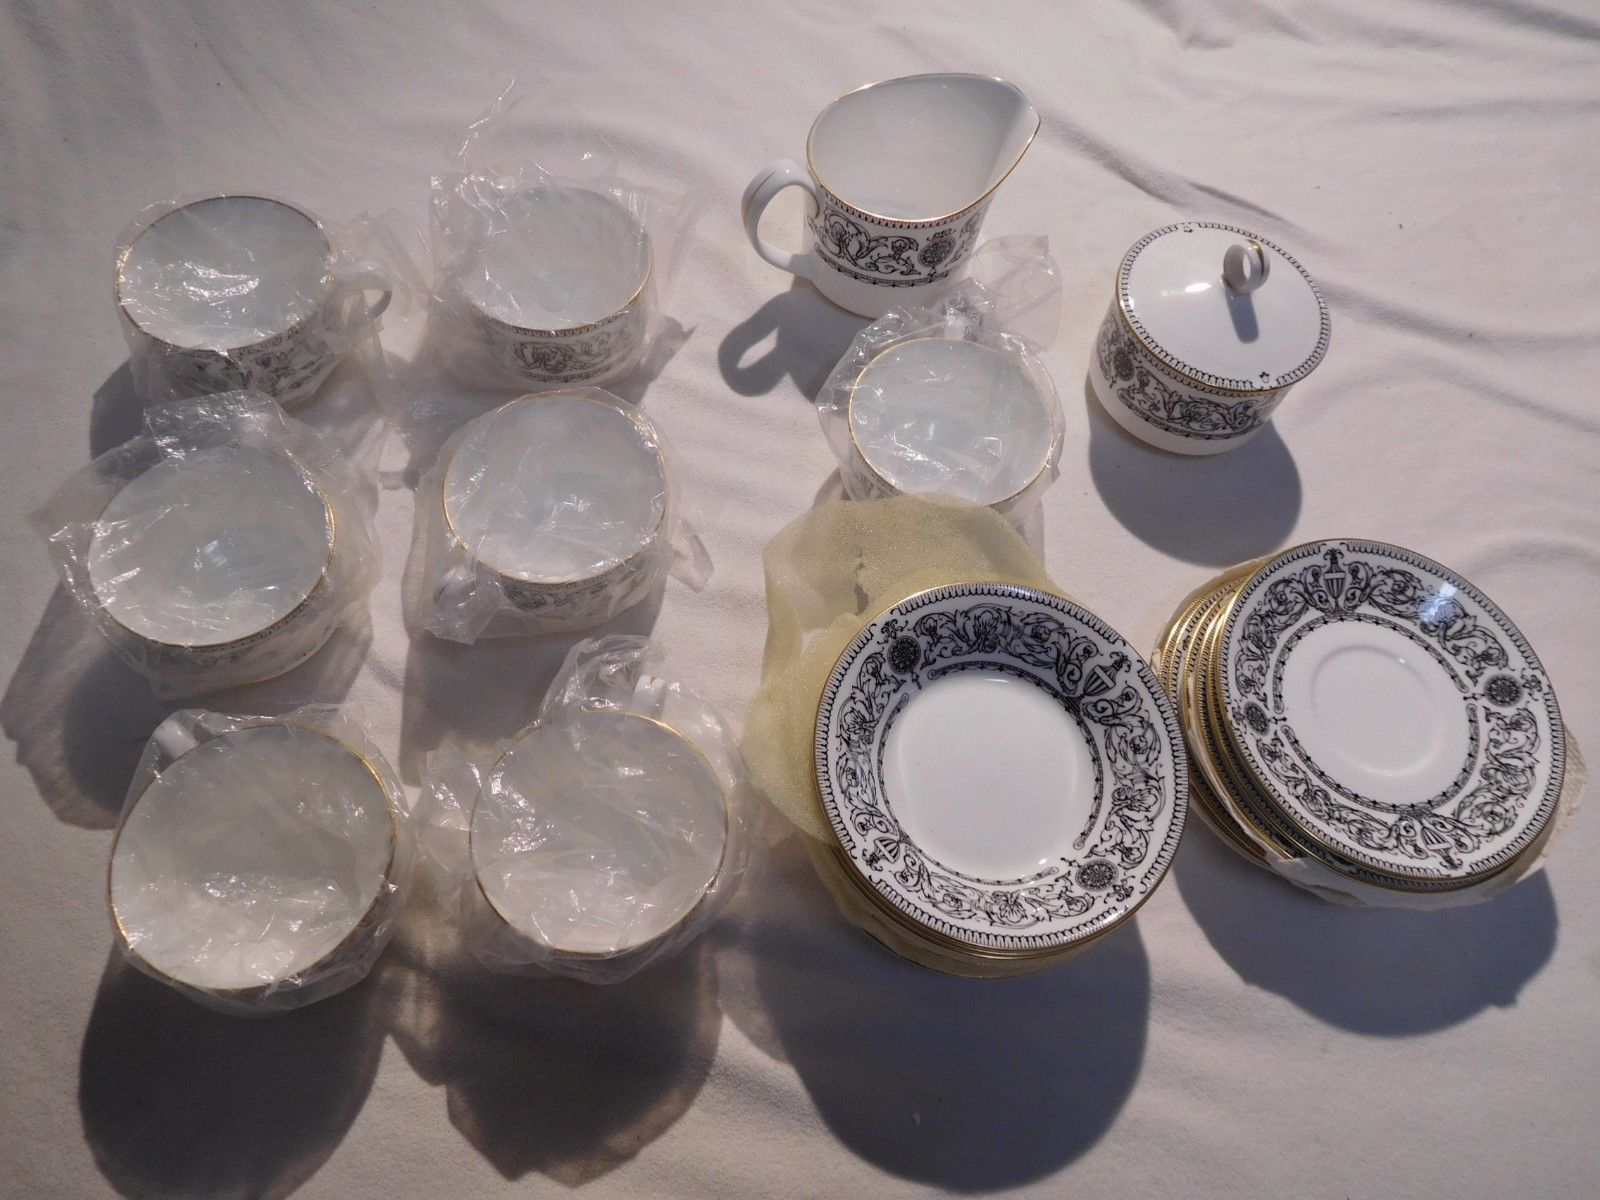 1966 ROYAL WORCESTER PADUA incomplete set in mint condition